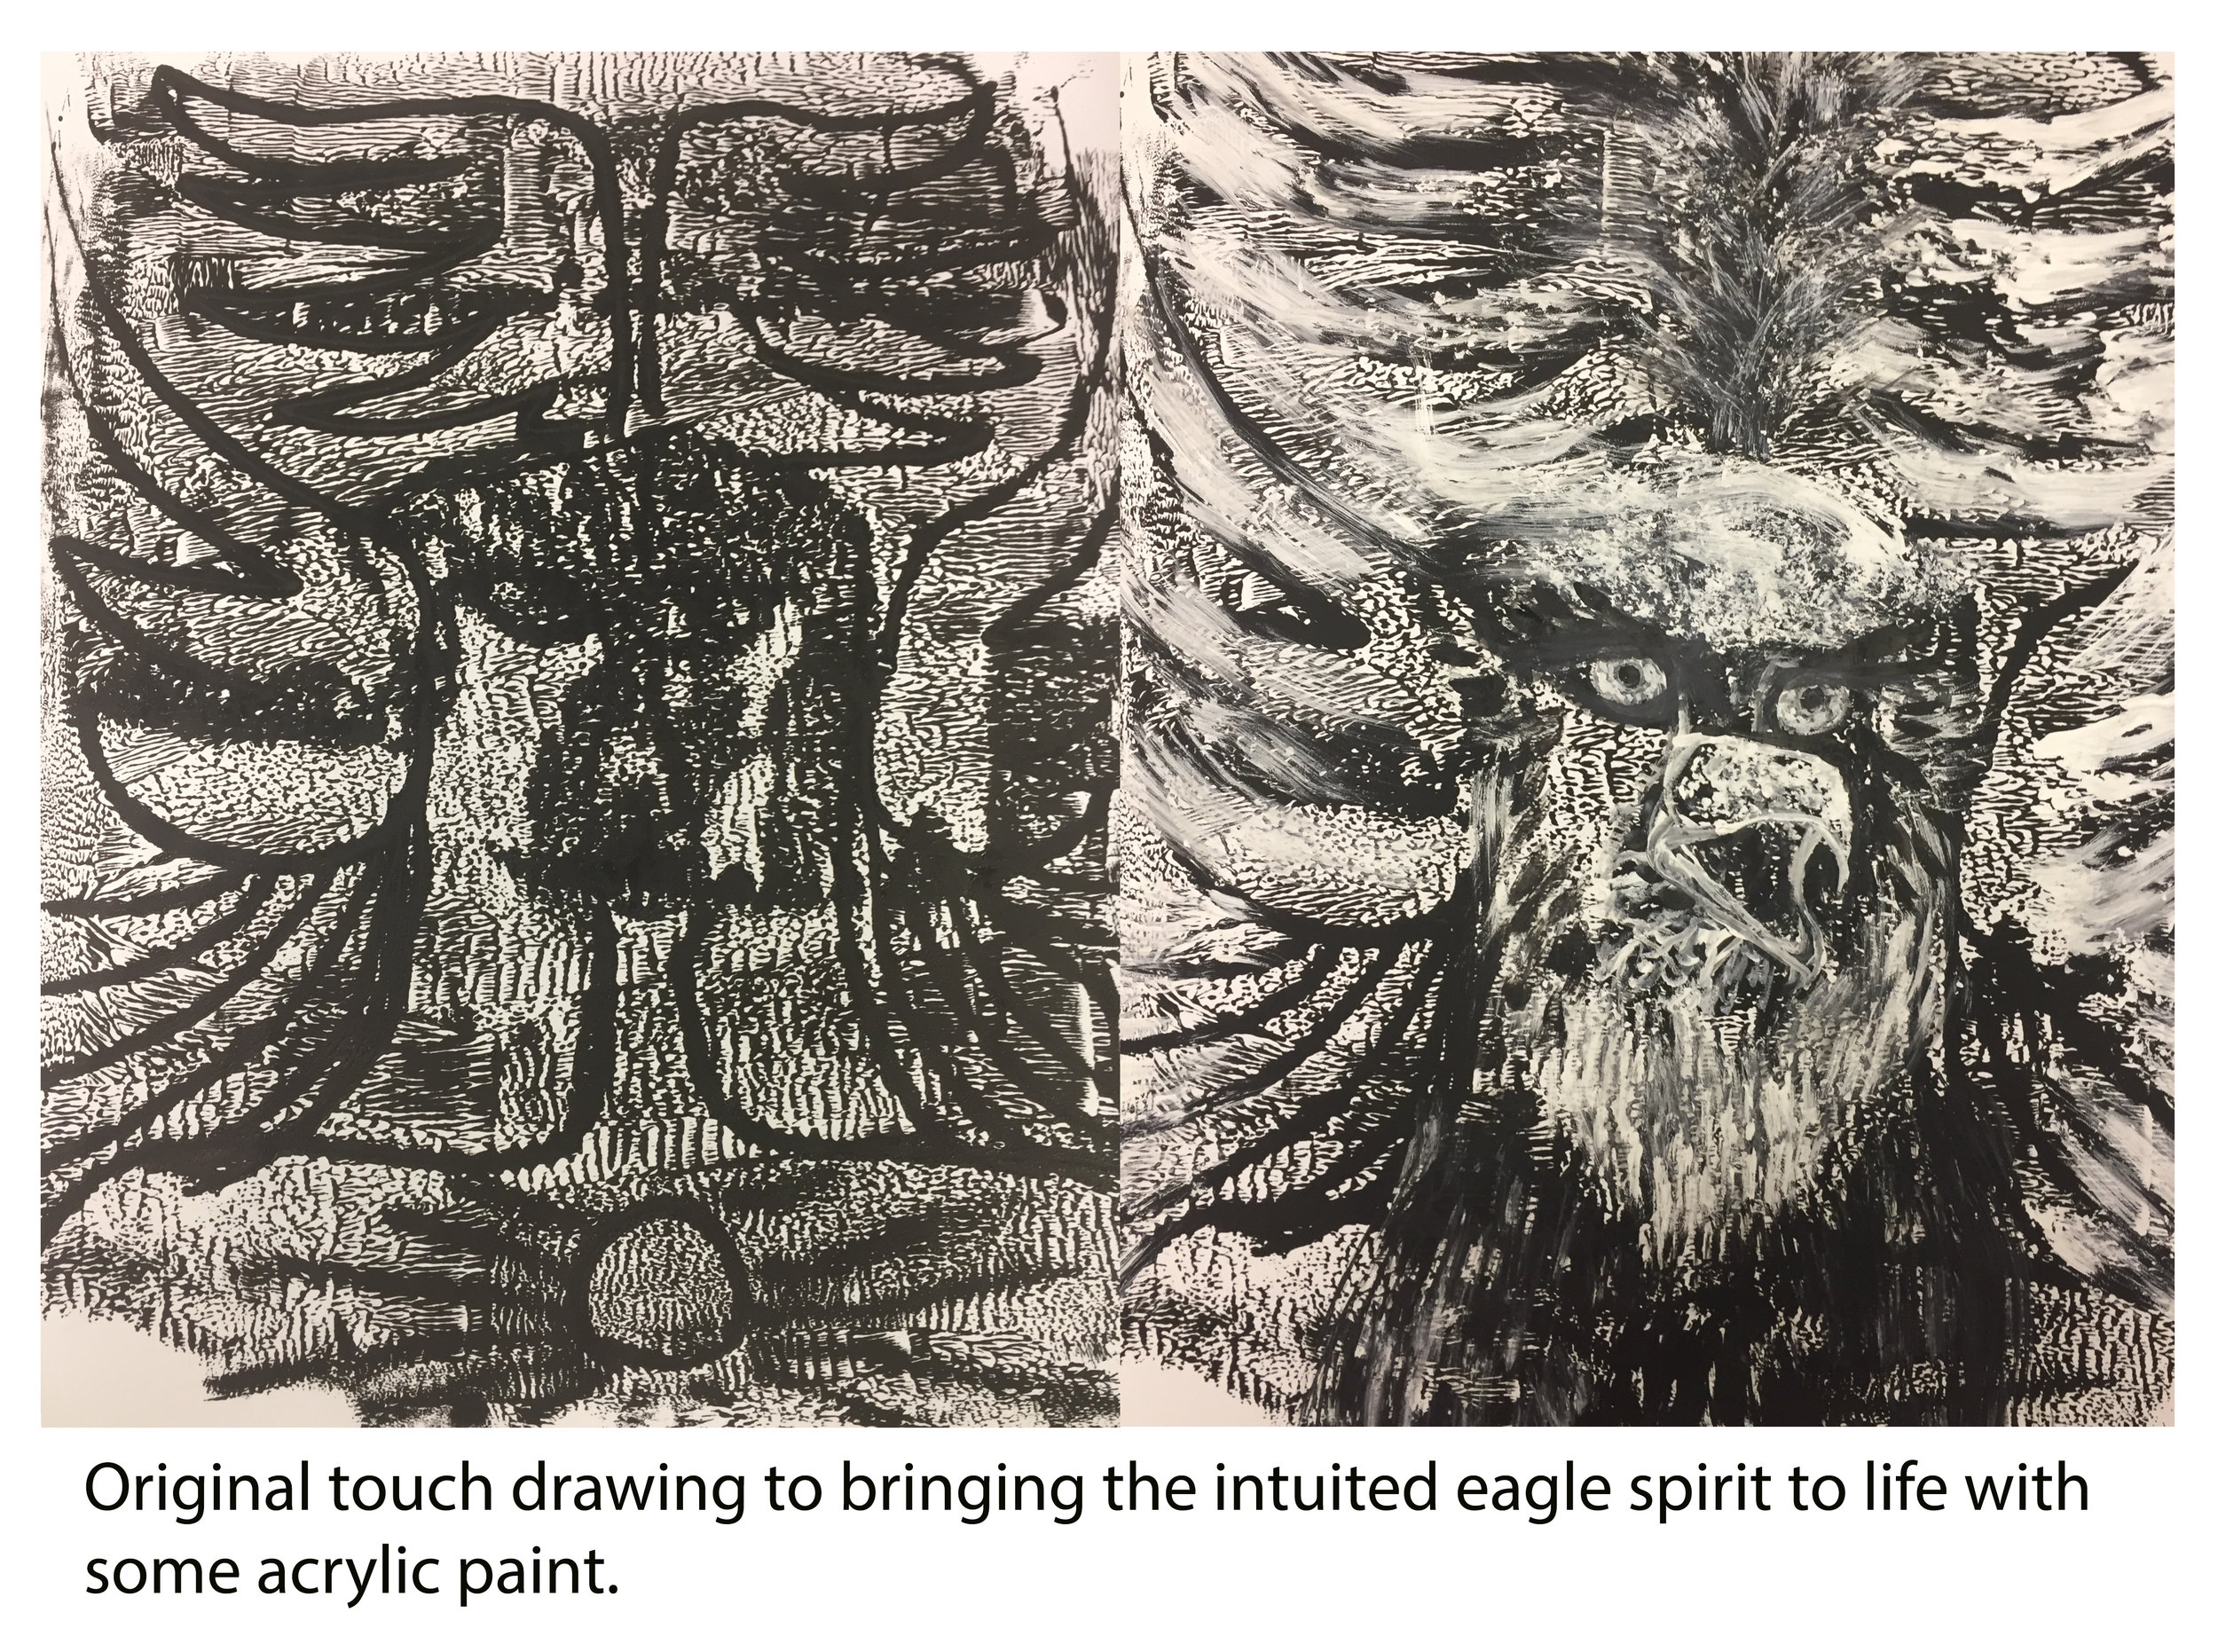 touch and retouch eagle spirit.jpg